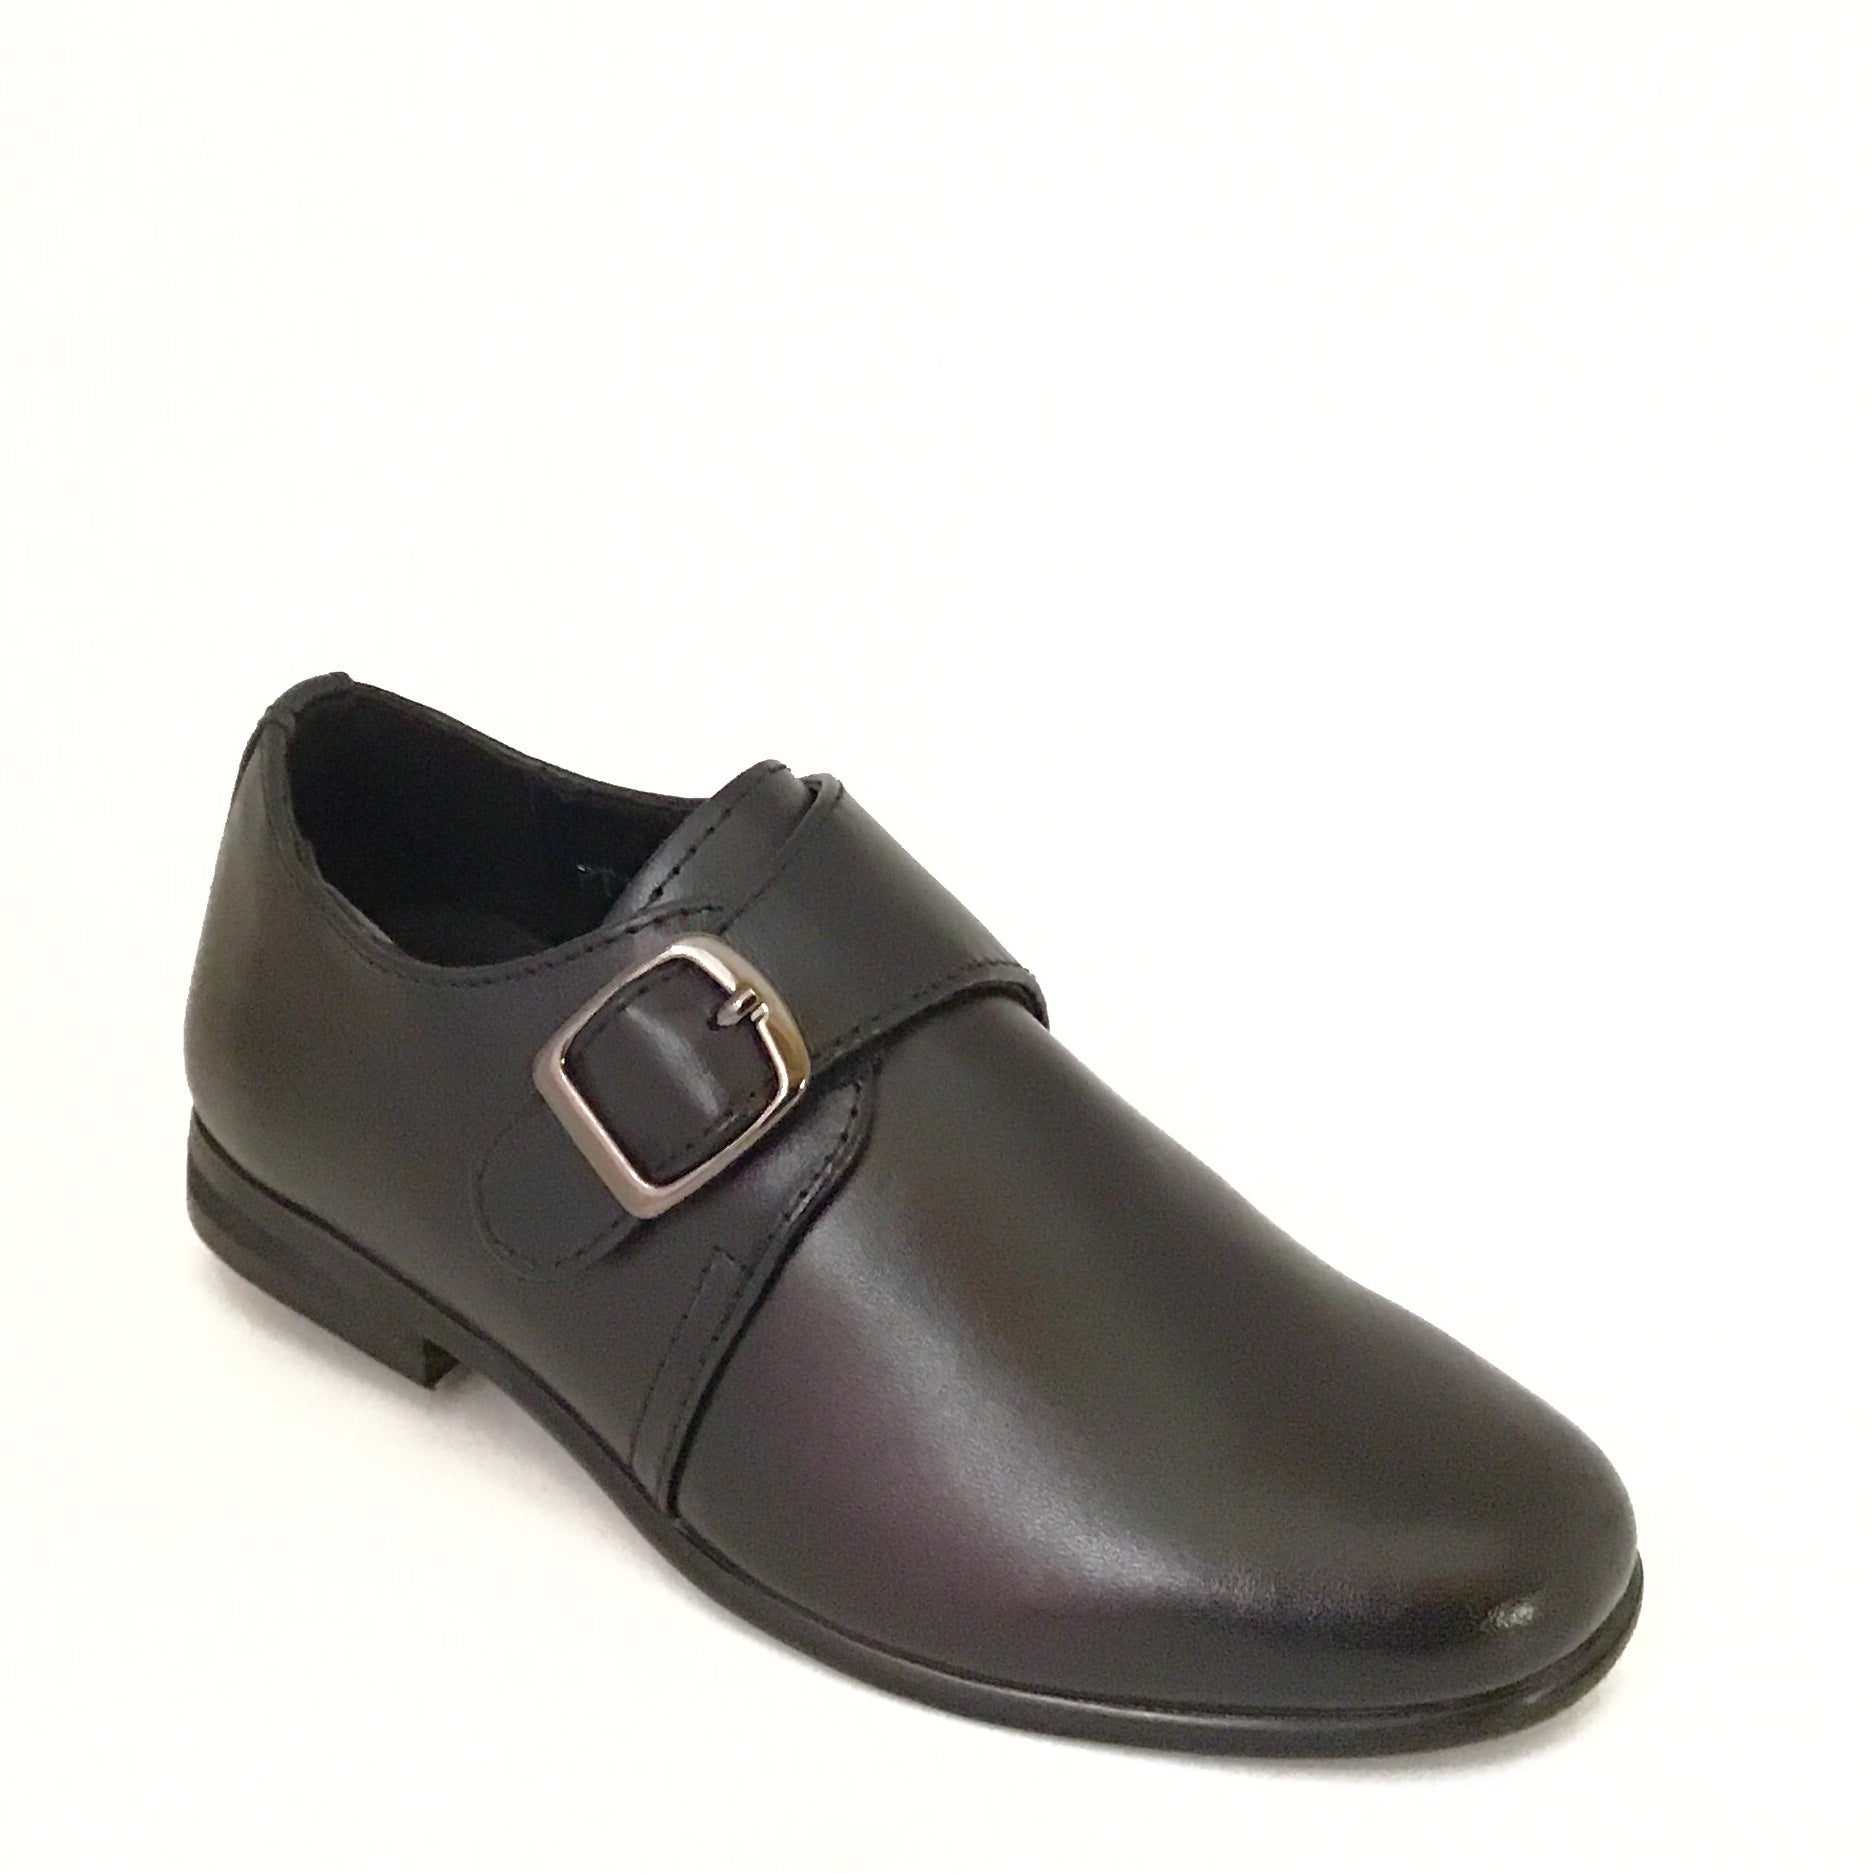 Pardo Black Velcro Buckle Dress Shoe